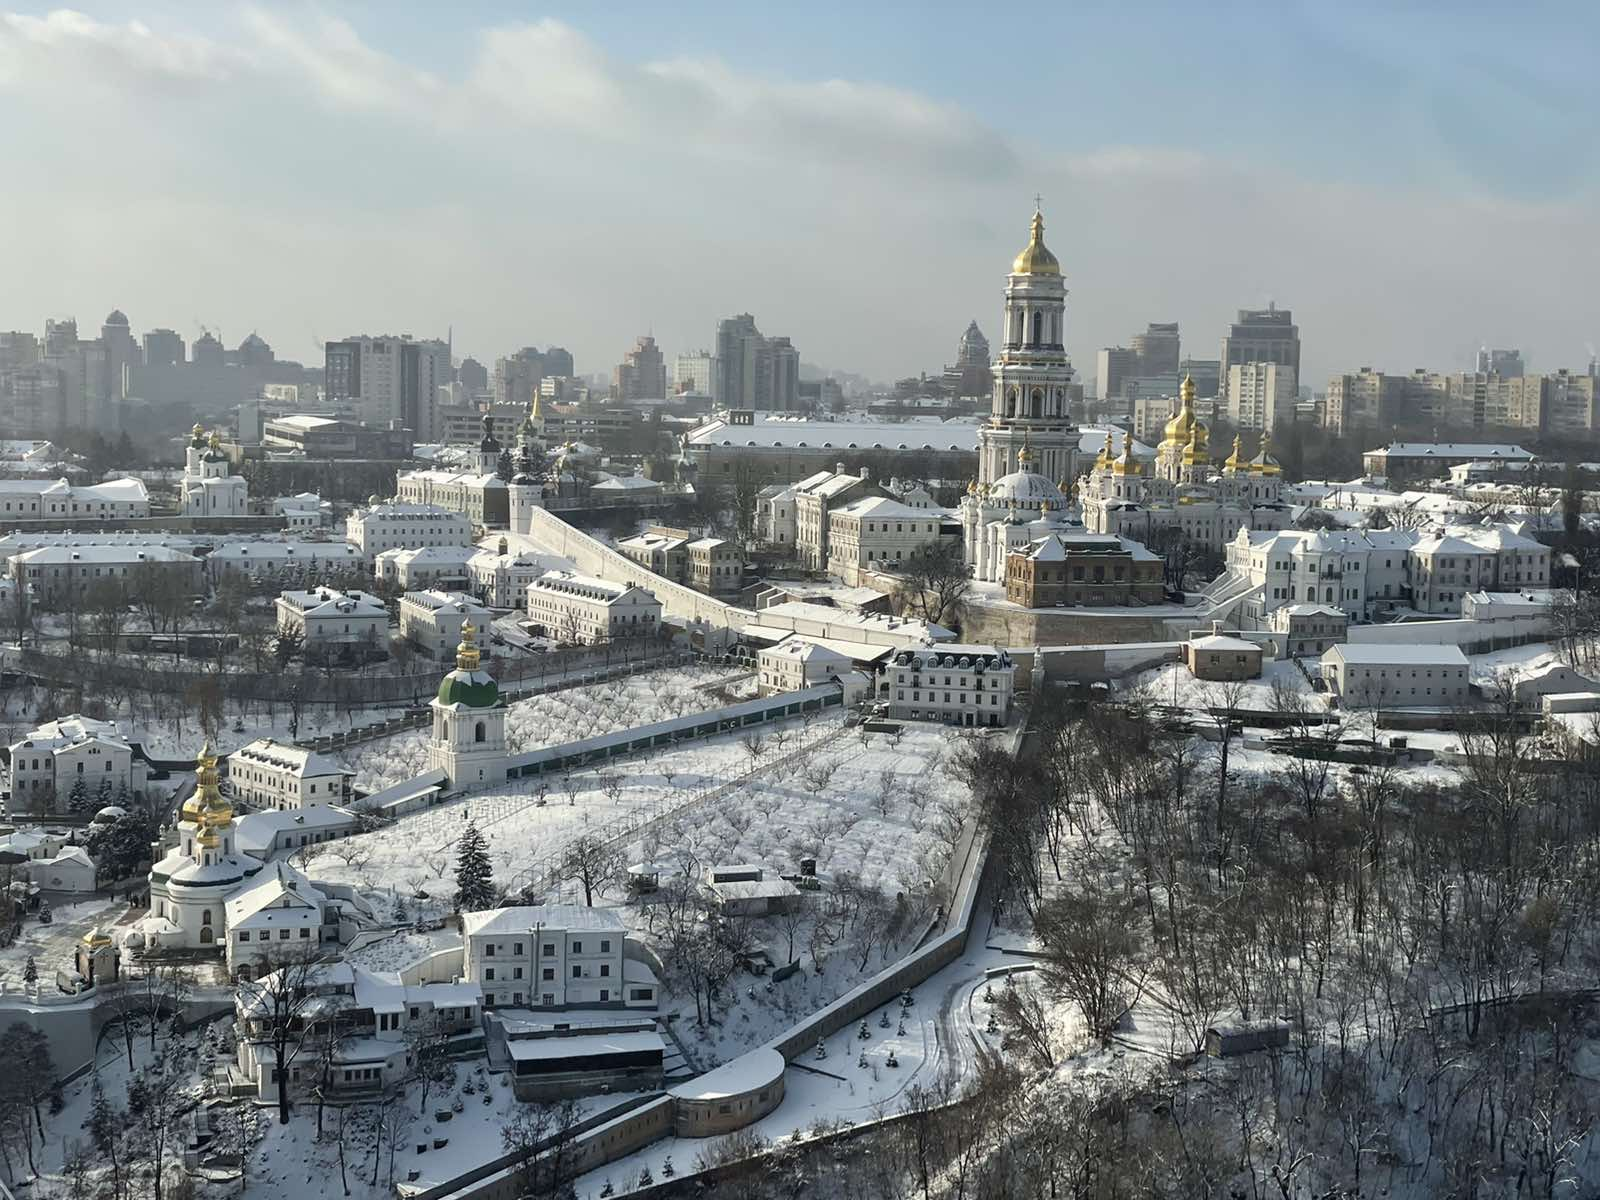 KIEV HELICOPTER TOUR – 24 MINUTES